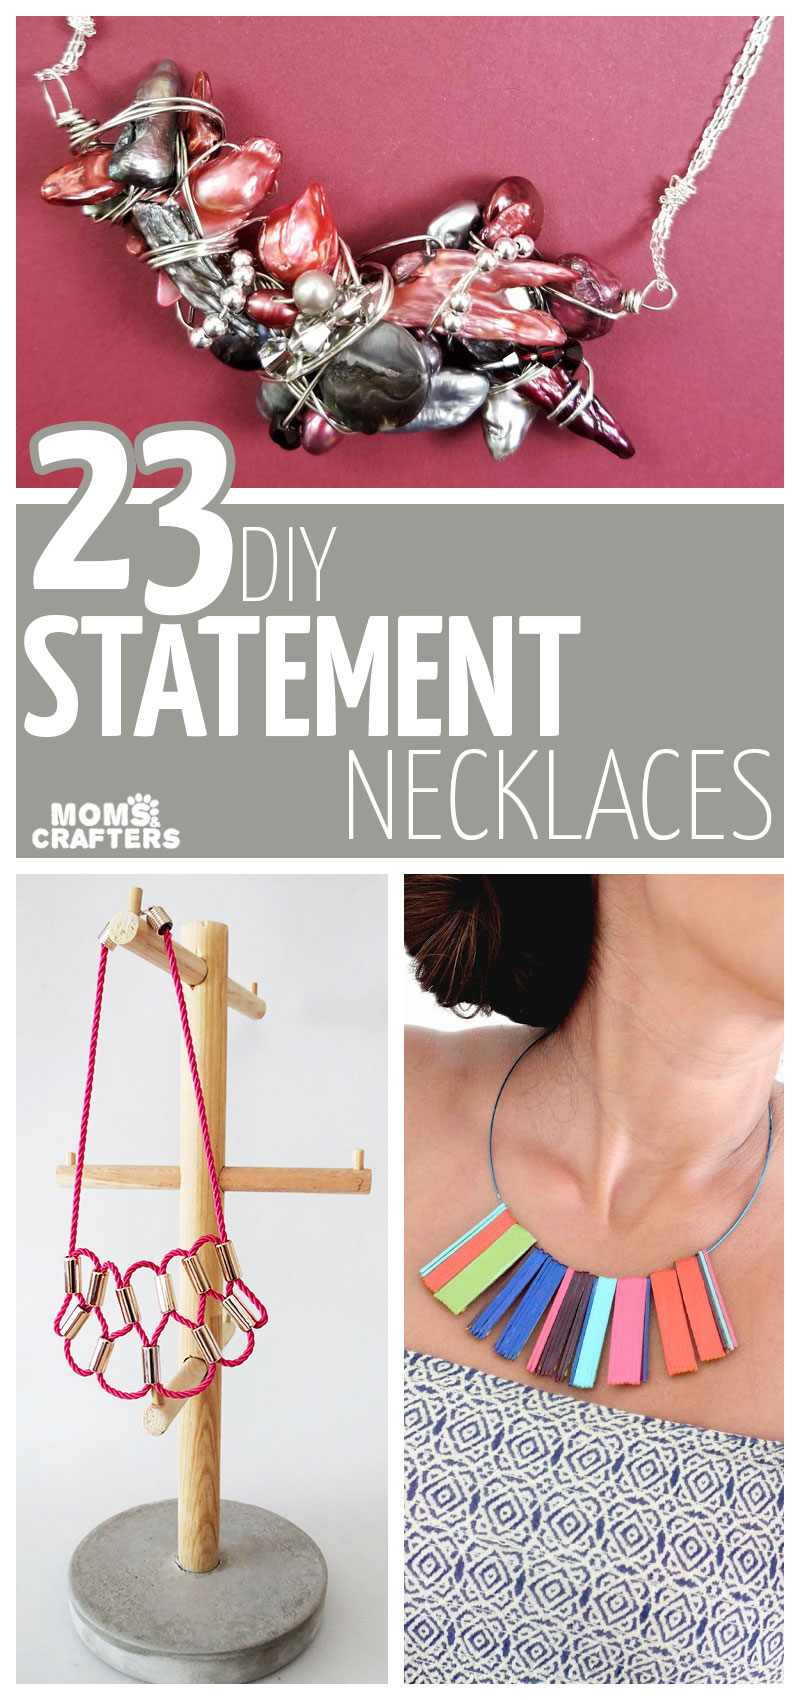 Make these gorgeous DIY statement necklace projects! This list includes fresh ideas for everyone - easy jewelry making ideas for beginners, cool trendy projects for teens, and more!